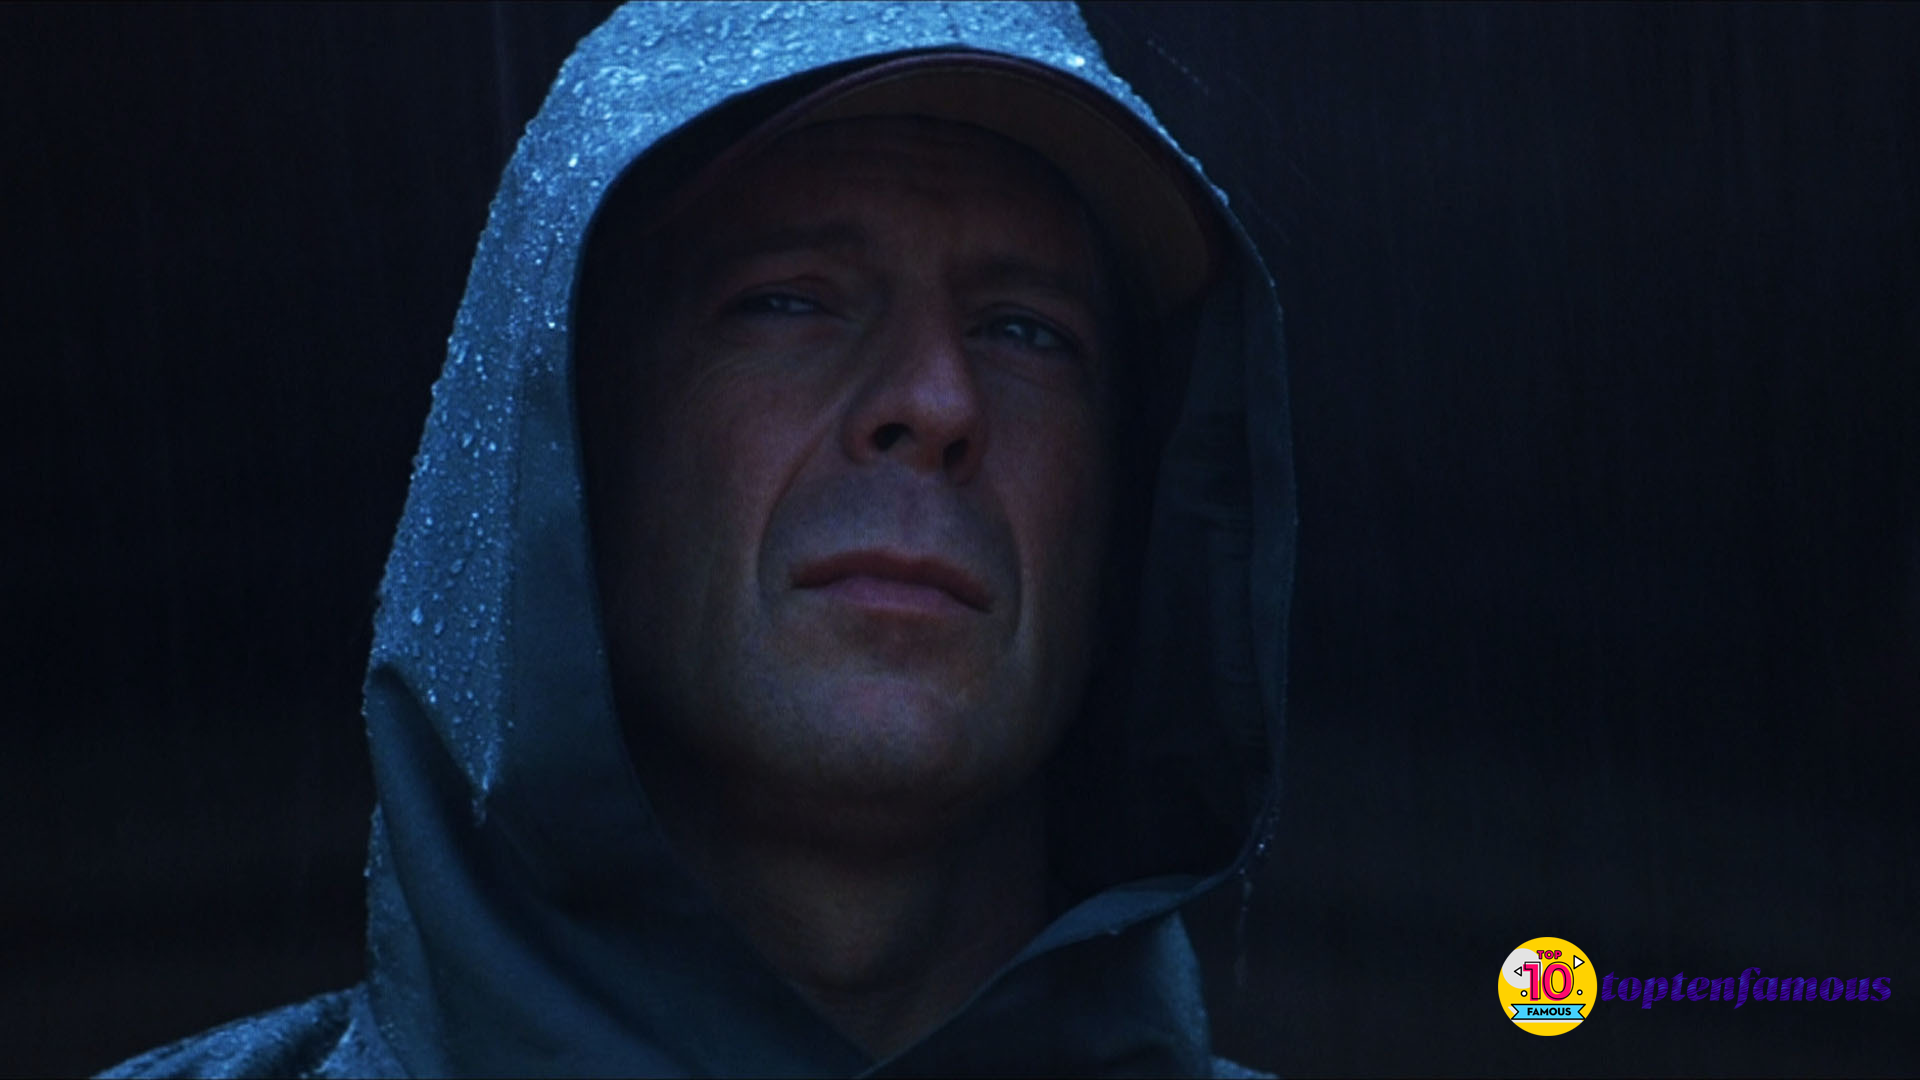 Bruce Willis Then and Now: His 5 Best Movies